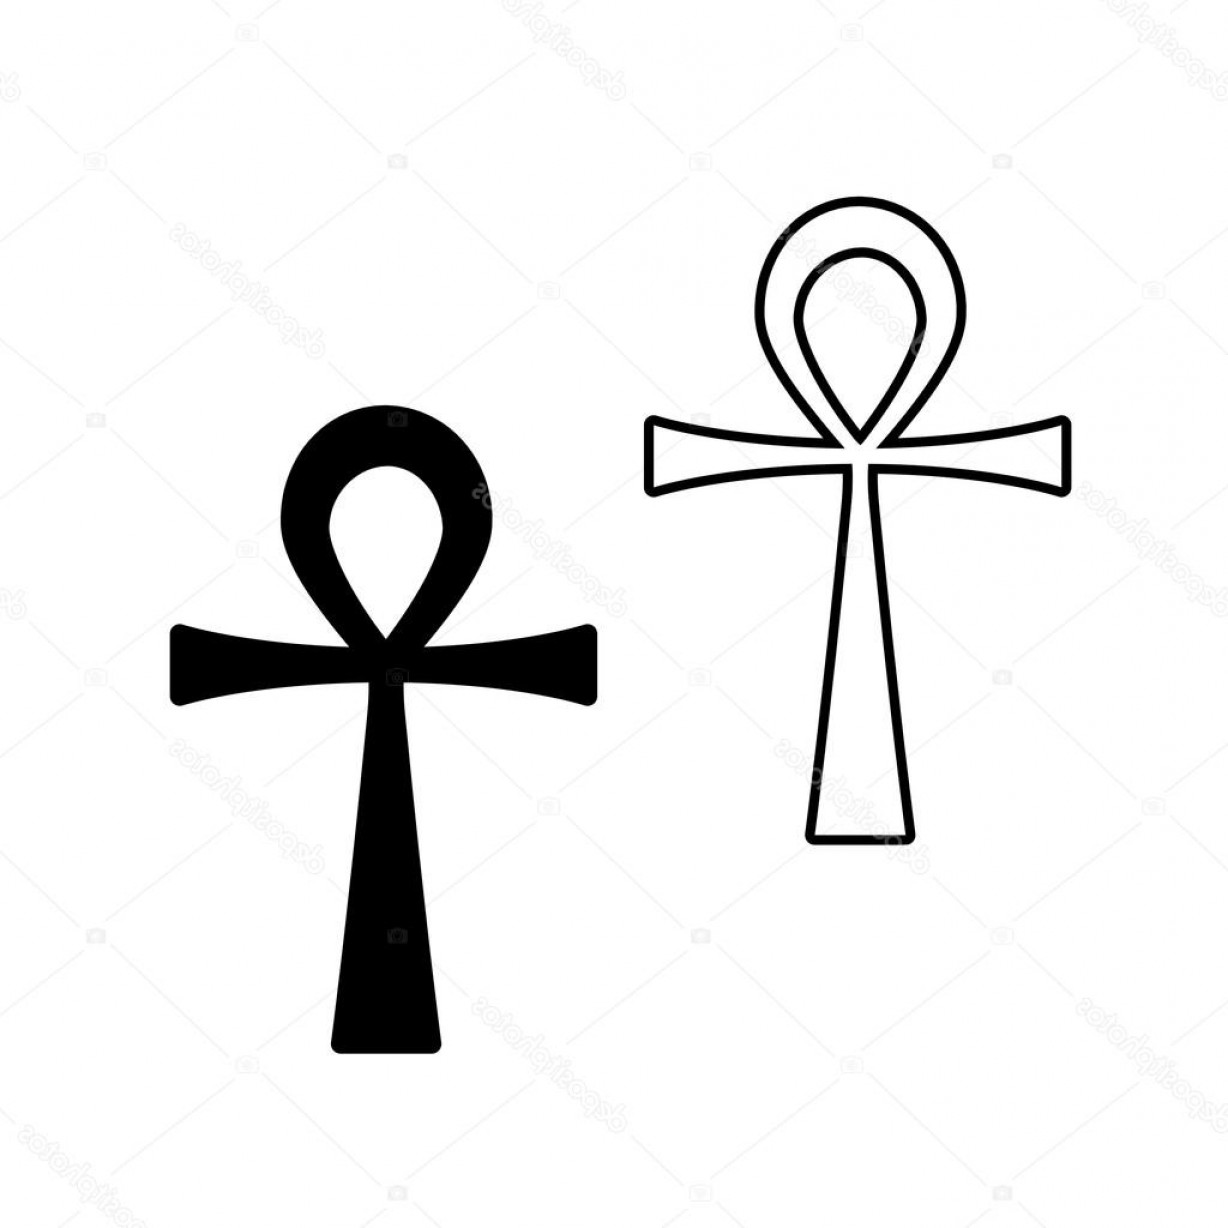 1228x1228 Stock Illustration Ankh Symbols Egyptian Crosses Geekchicpro